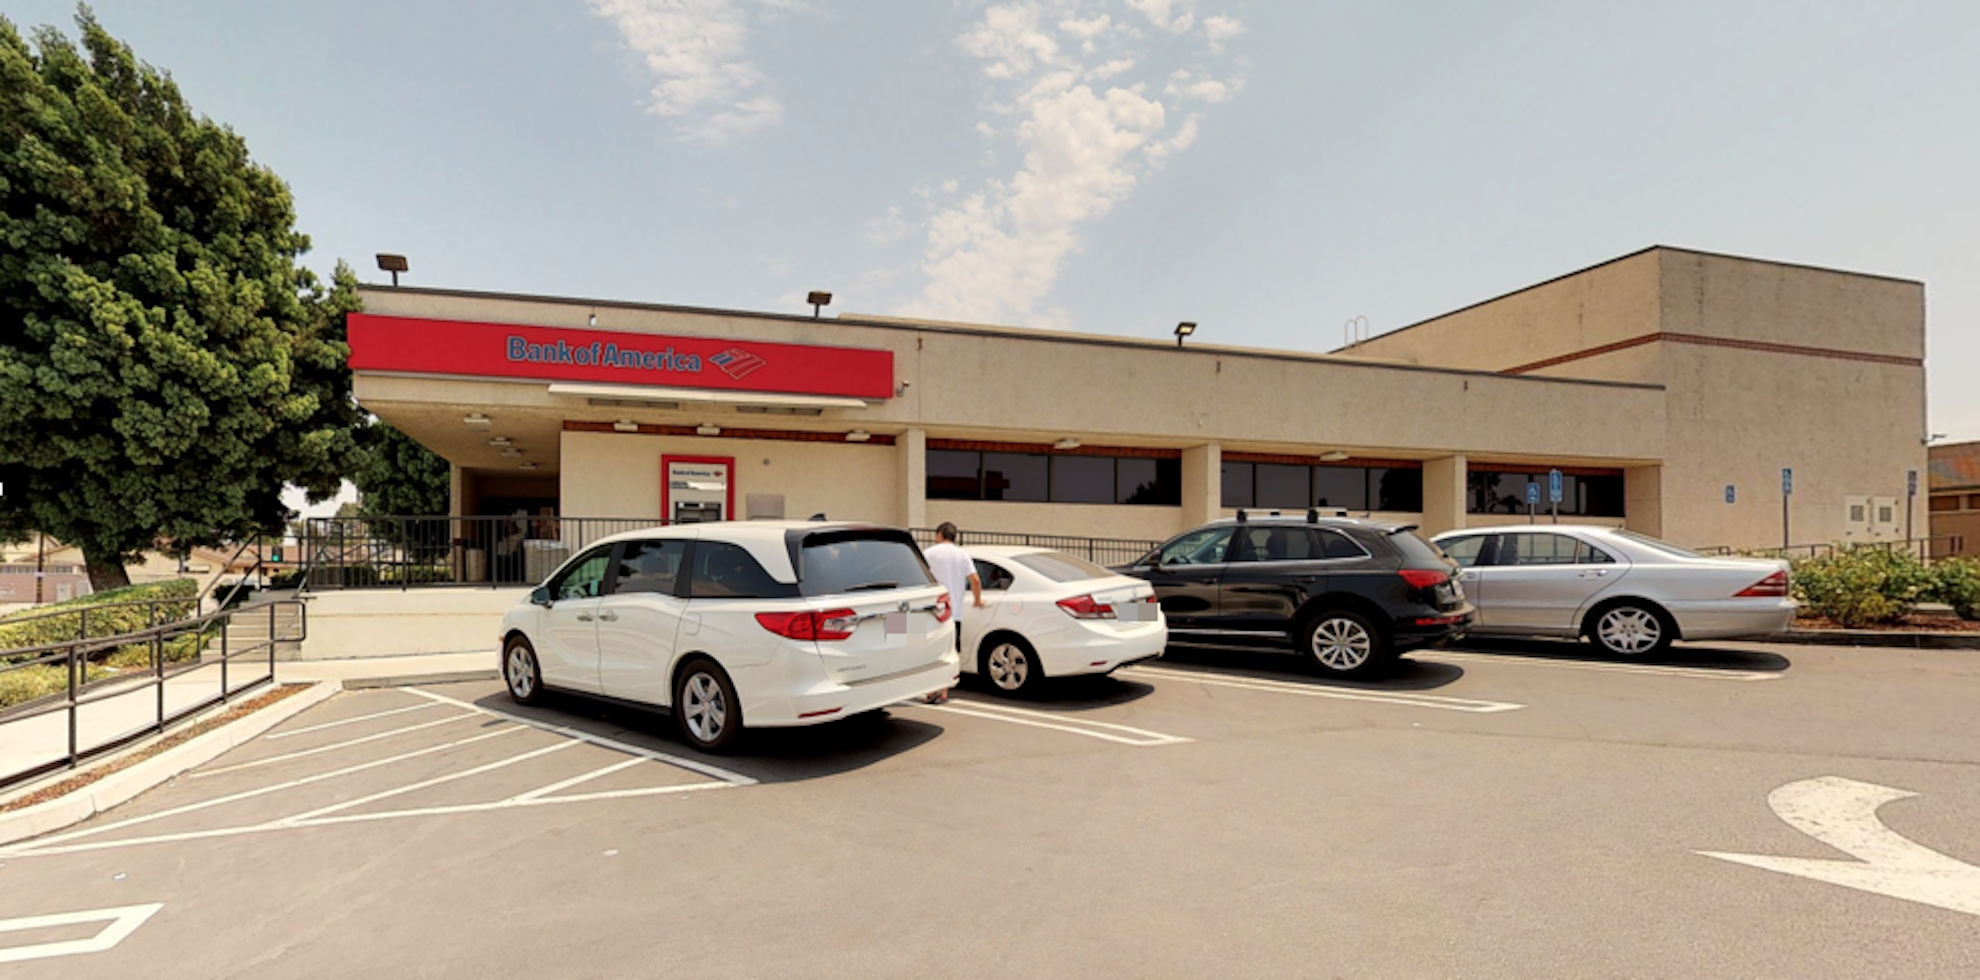 Bank of America financial center with drive-thru ATM | 1501 Nogales St, Rowland Heights, CA 91748